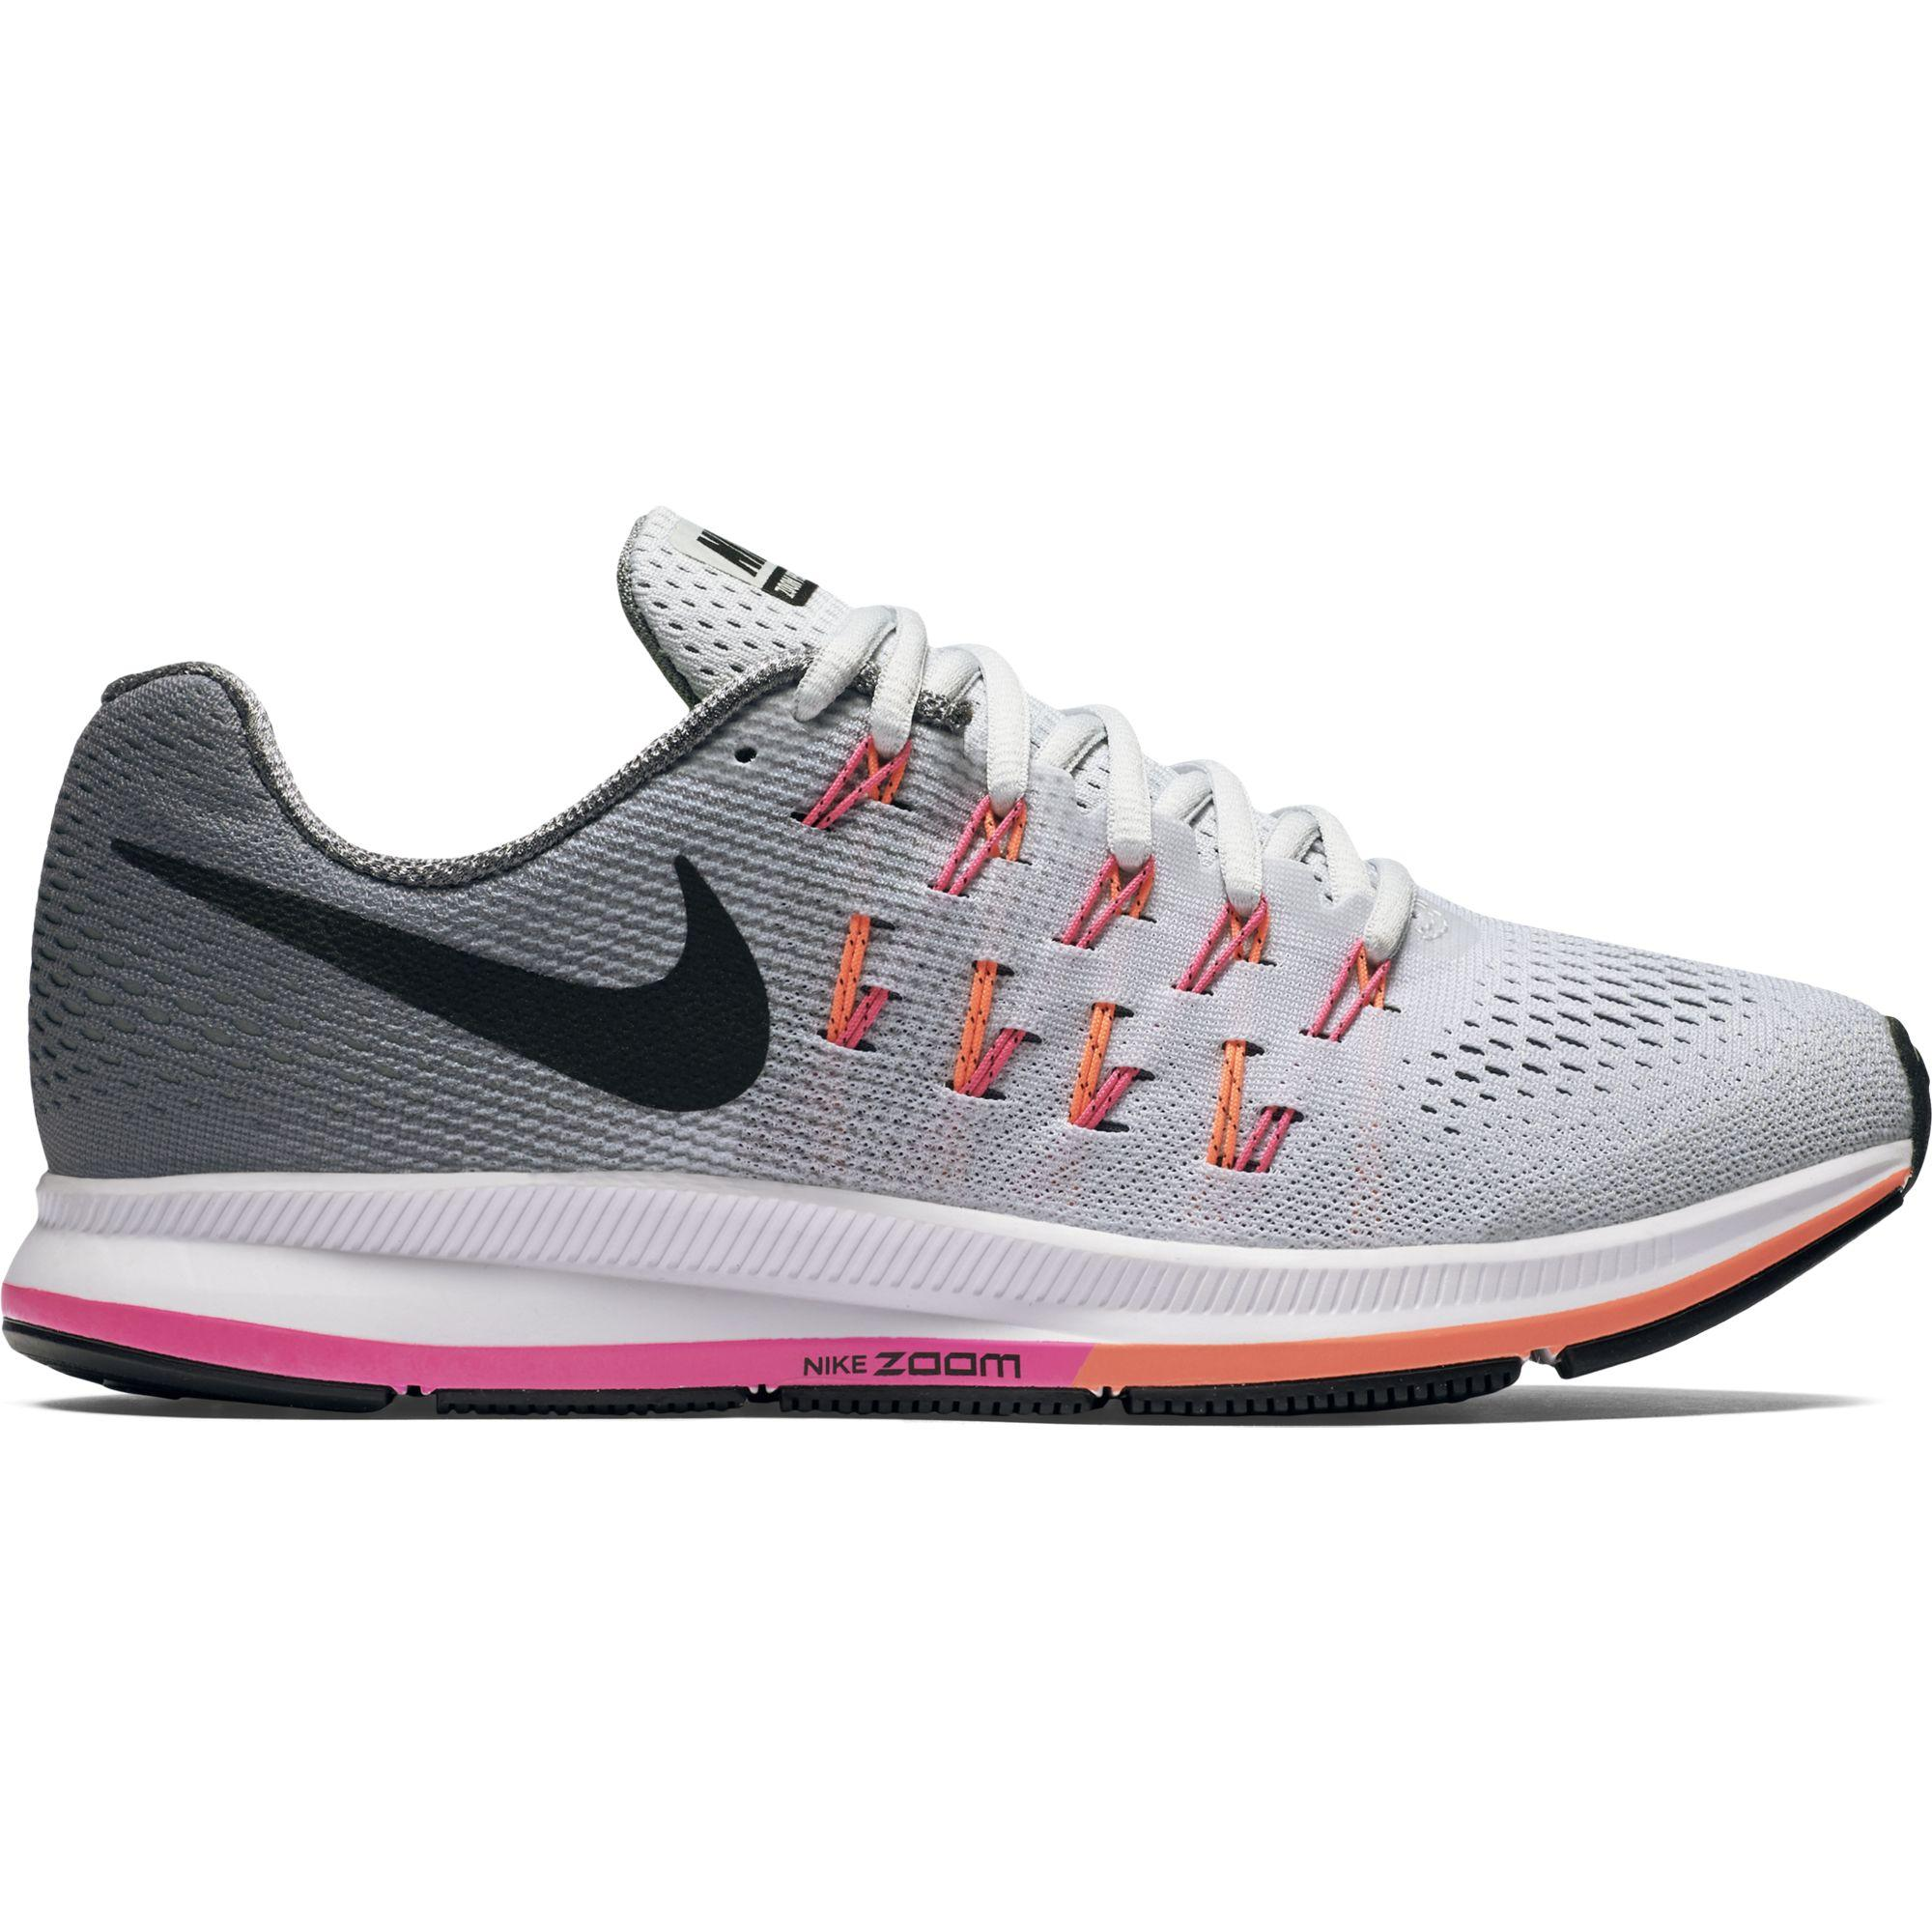 San Francisco e8a2a 5cafc Women's | Nike Air Zoom Pegasus 33